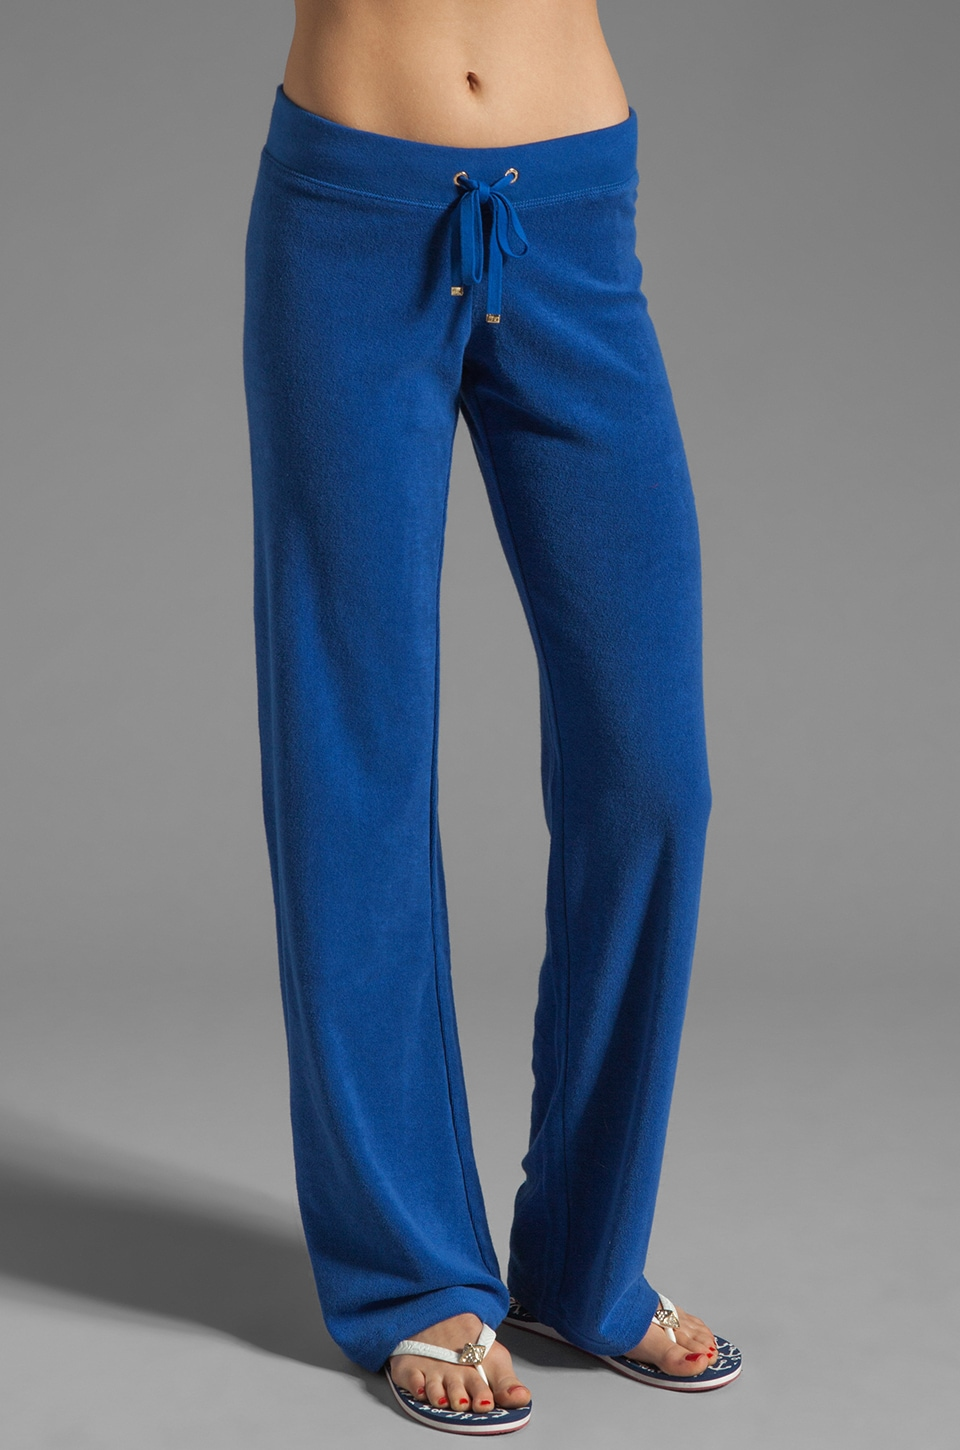 Juicy Couture Terry Original Leg Pant in Zuma